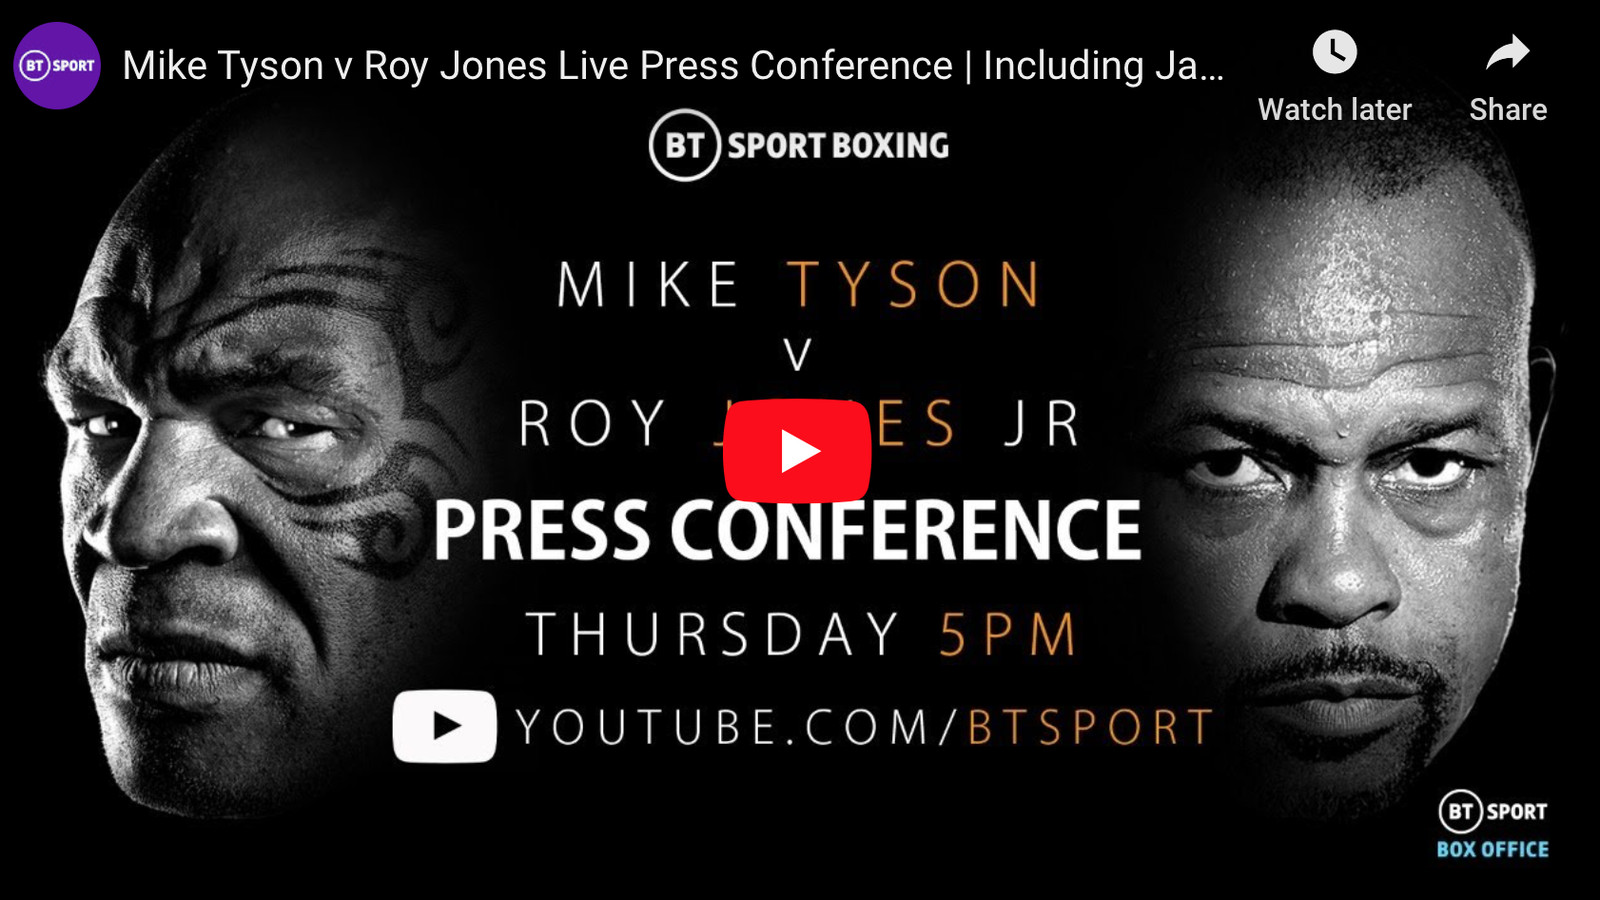 mike tyson vs roy jones jr press conference video also feat jake paul and viddal riley mmamania com mike tyson vs roy jones jr press